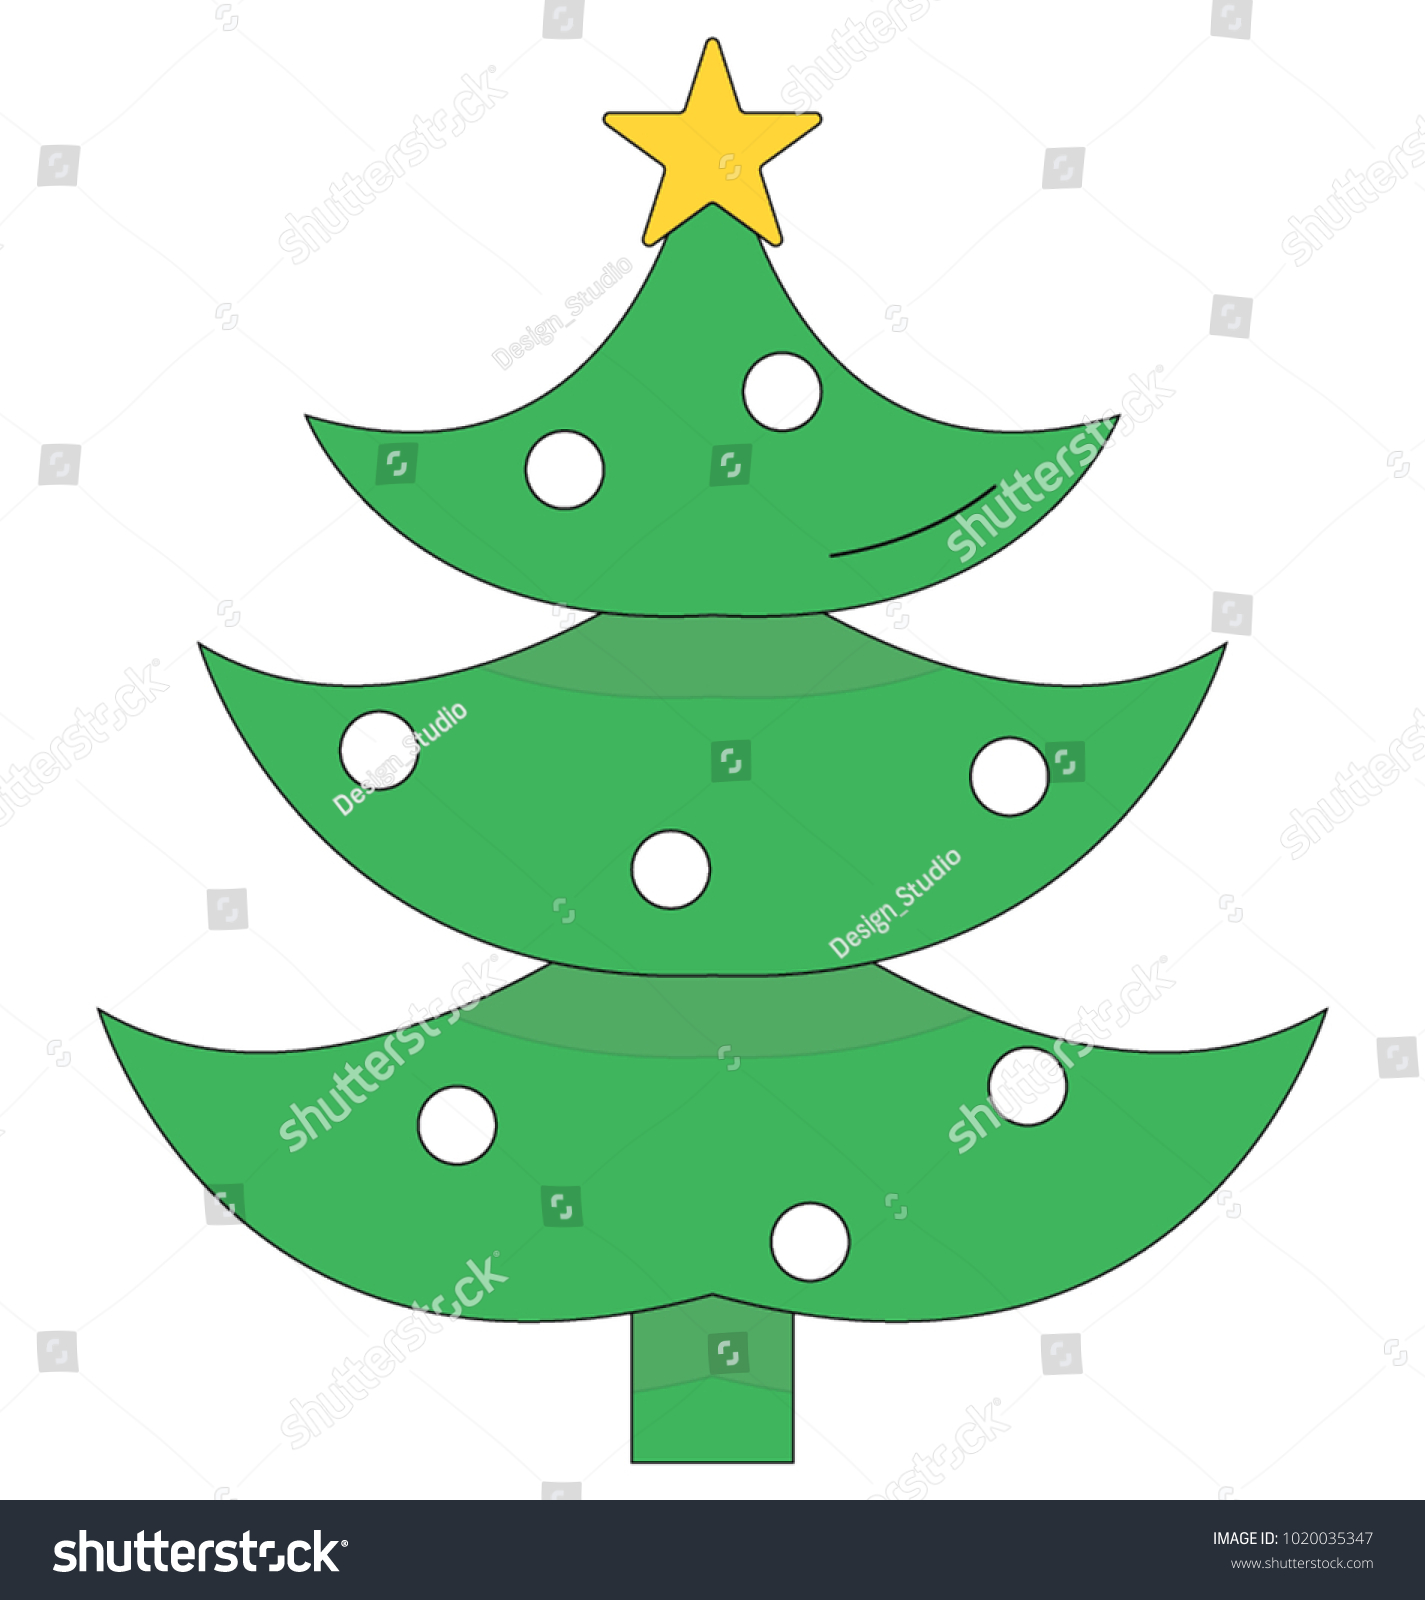 Christmas Tree Color Illustration Vector Icon Stock Vector ...